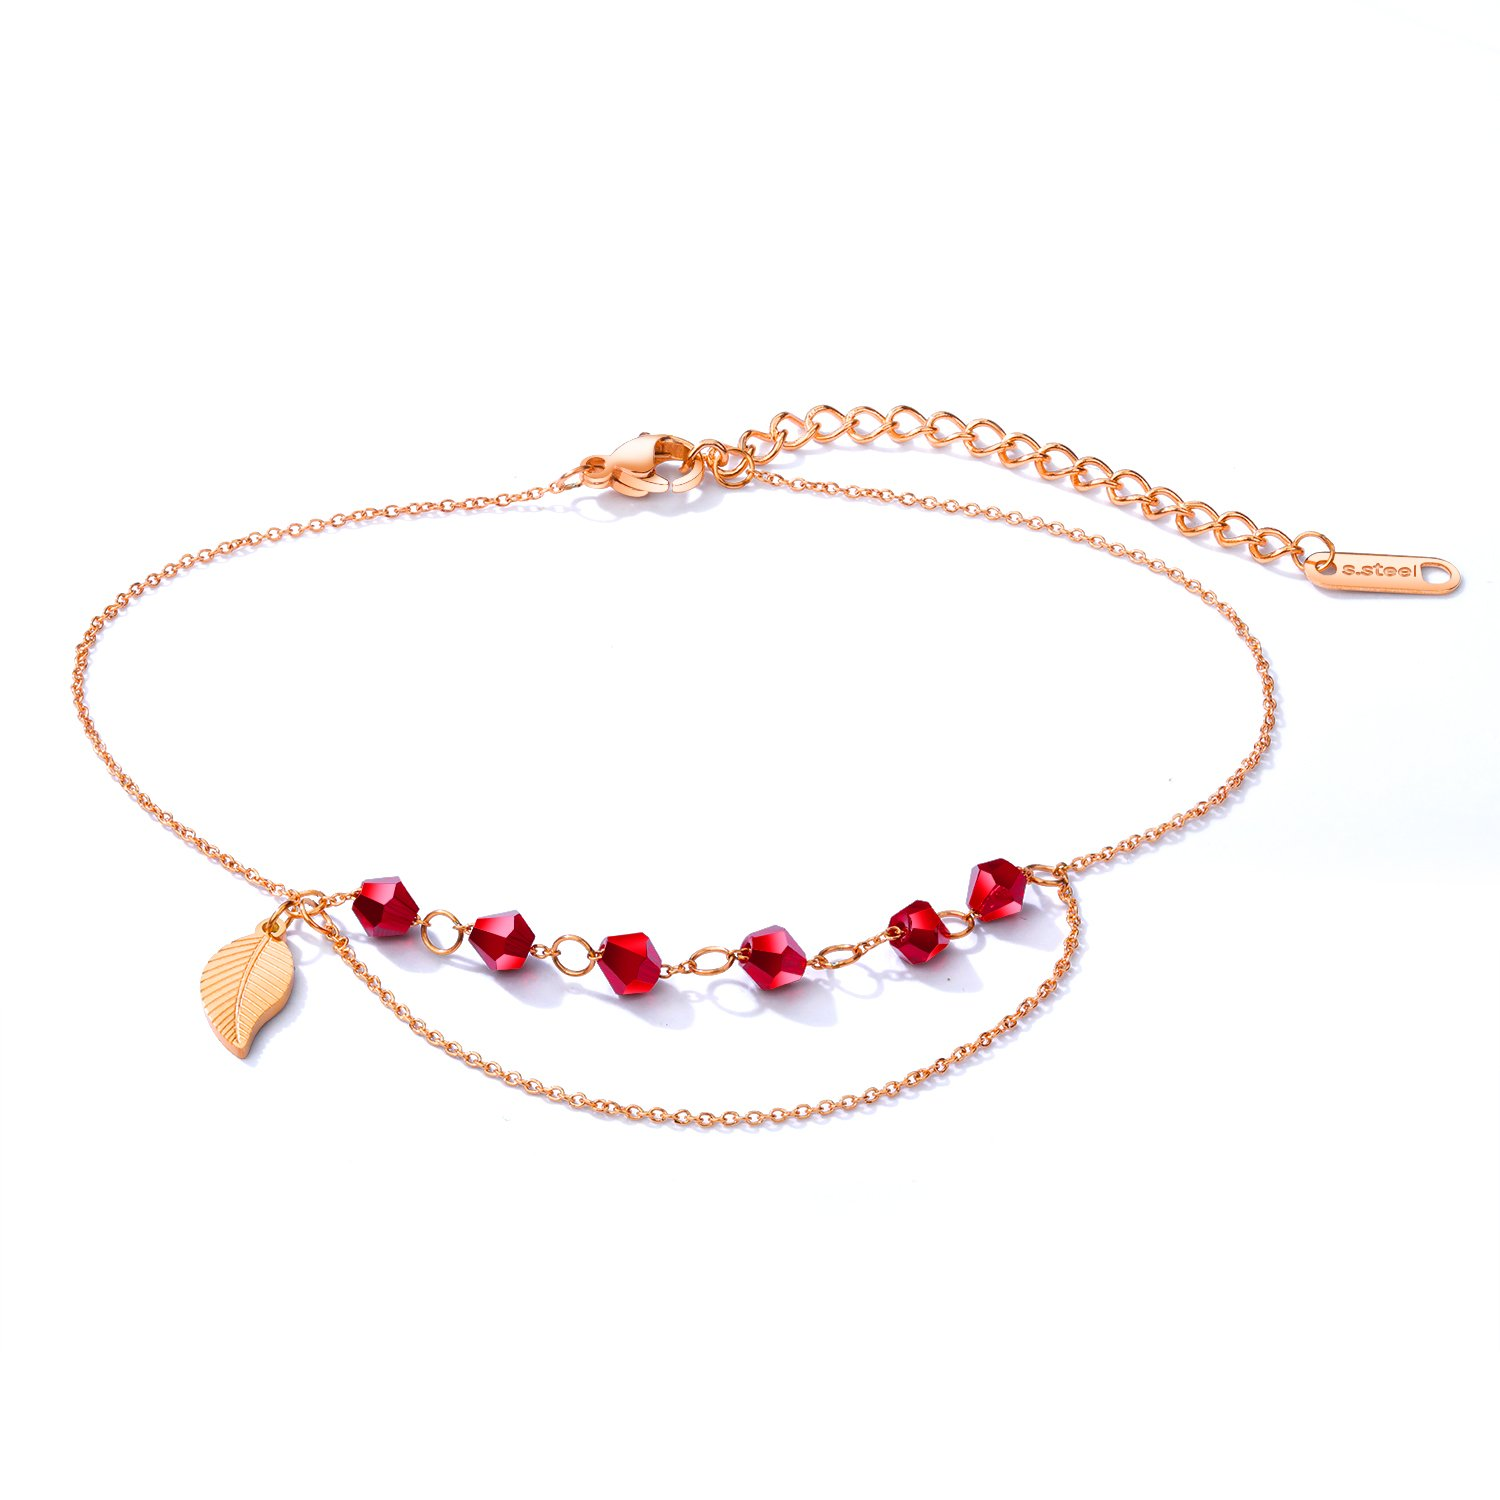 Fate Love Jewelry Women Stainless Steel Dangle Red Bead Leaves Rose Gold Charm Barefoot Foot Anklets Chain Bracelets, 9.4''+ 1.6''